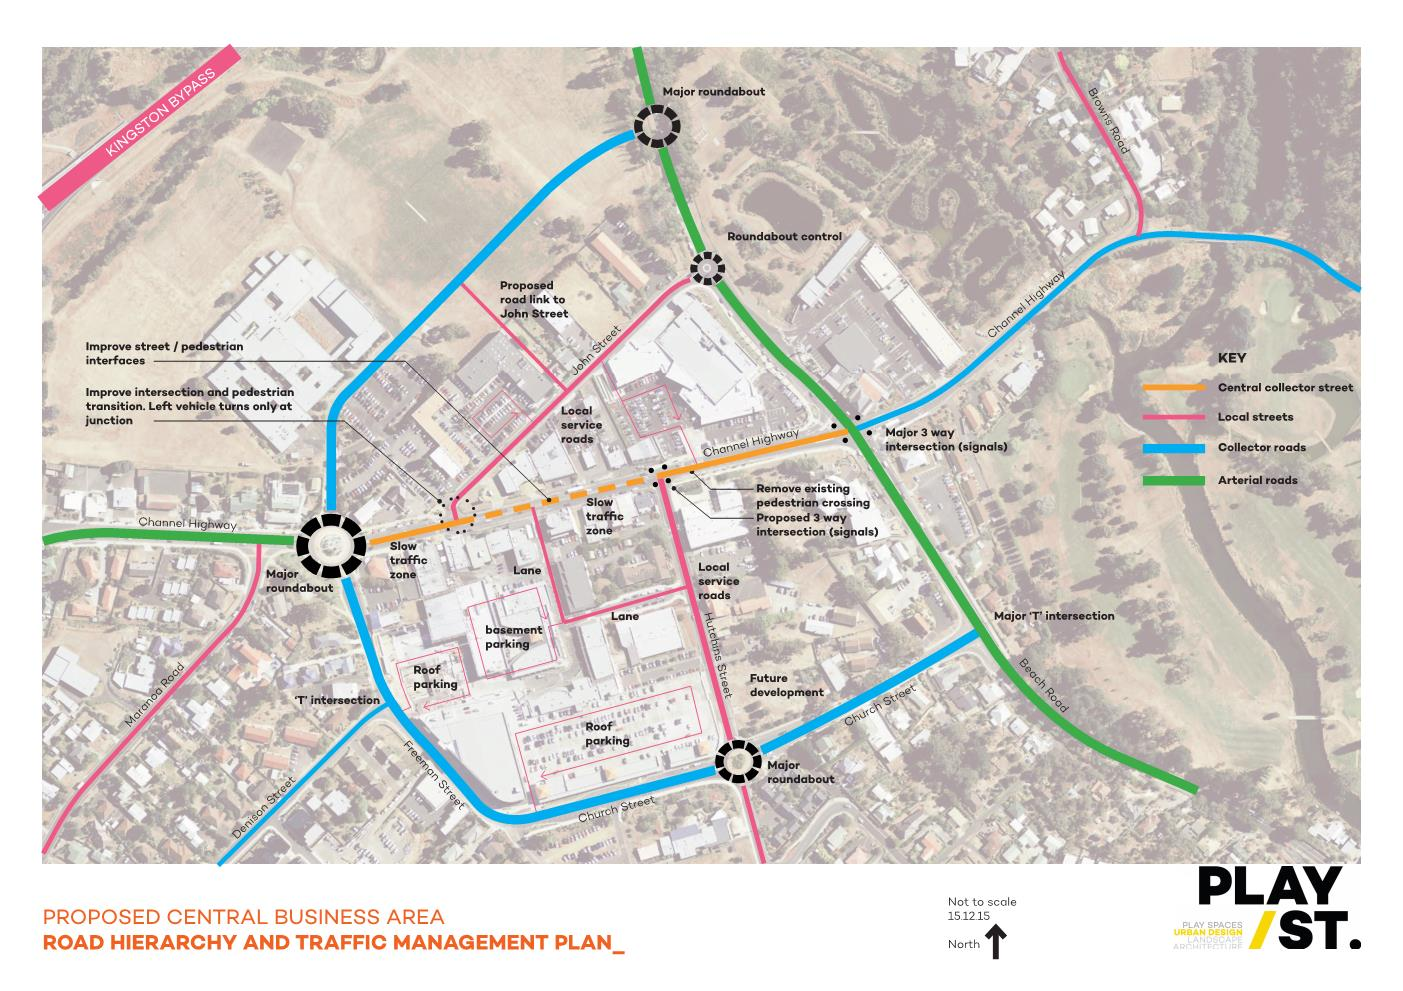 Proposed central Kingston area, roads and traffic flow